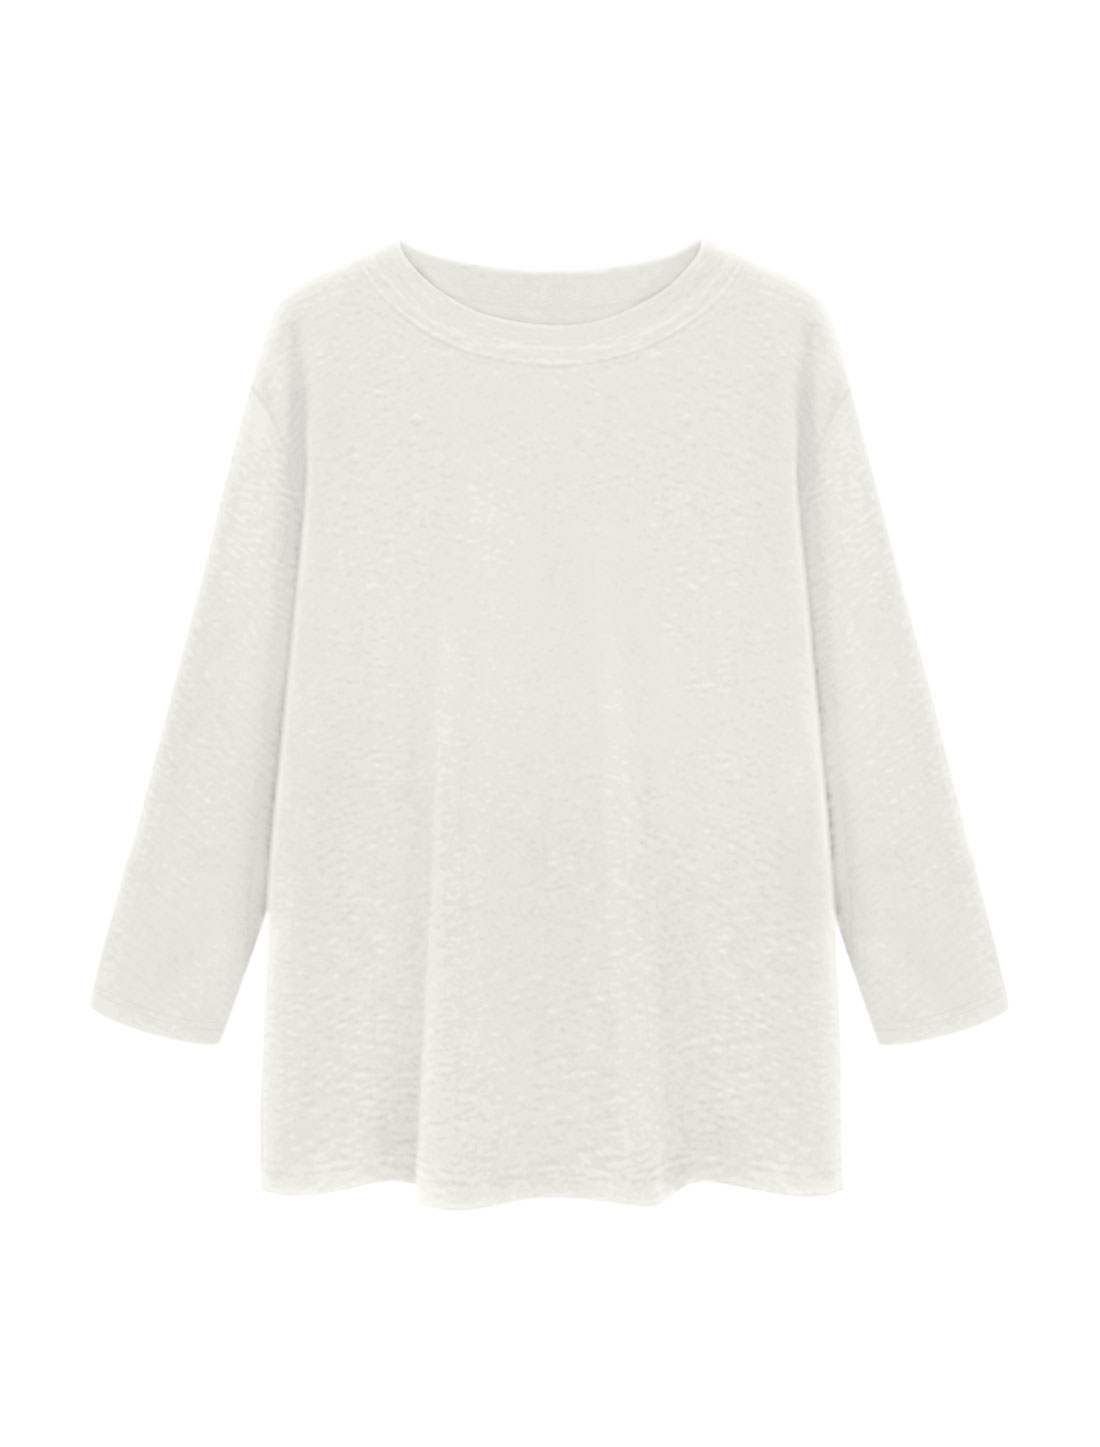 Women Round Neck Long Sleeves Textured Loose Tunic Top White S